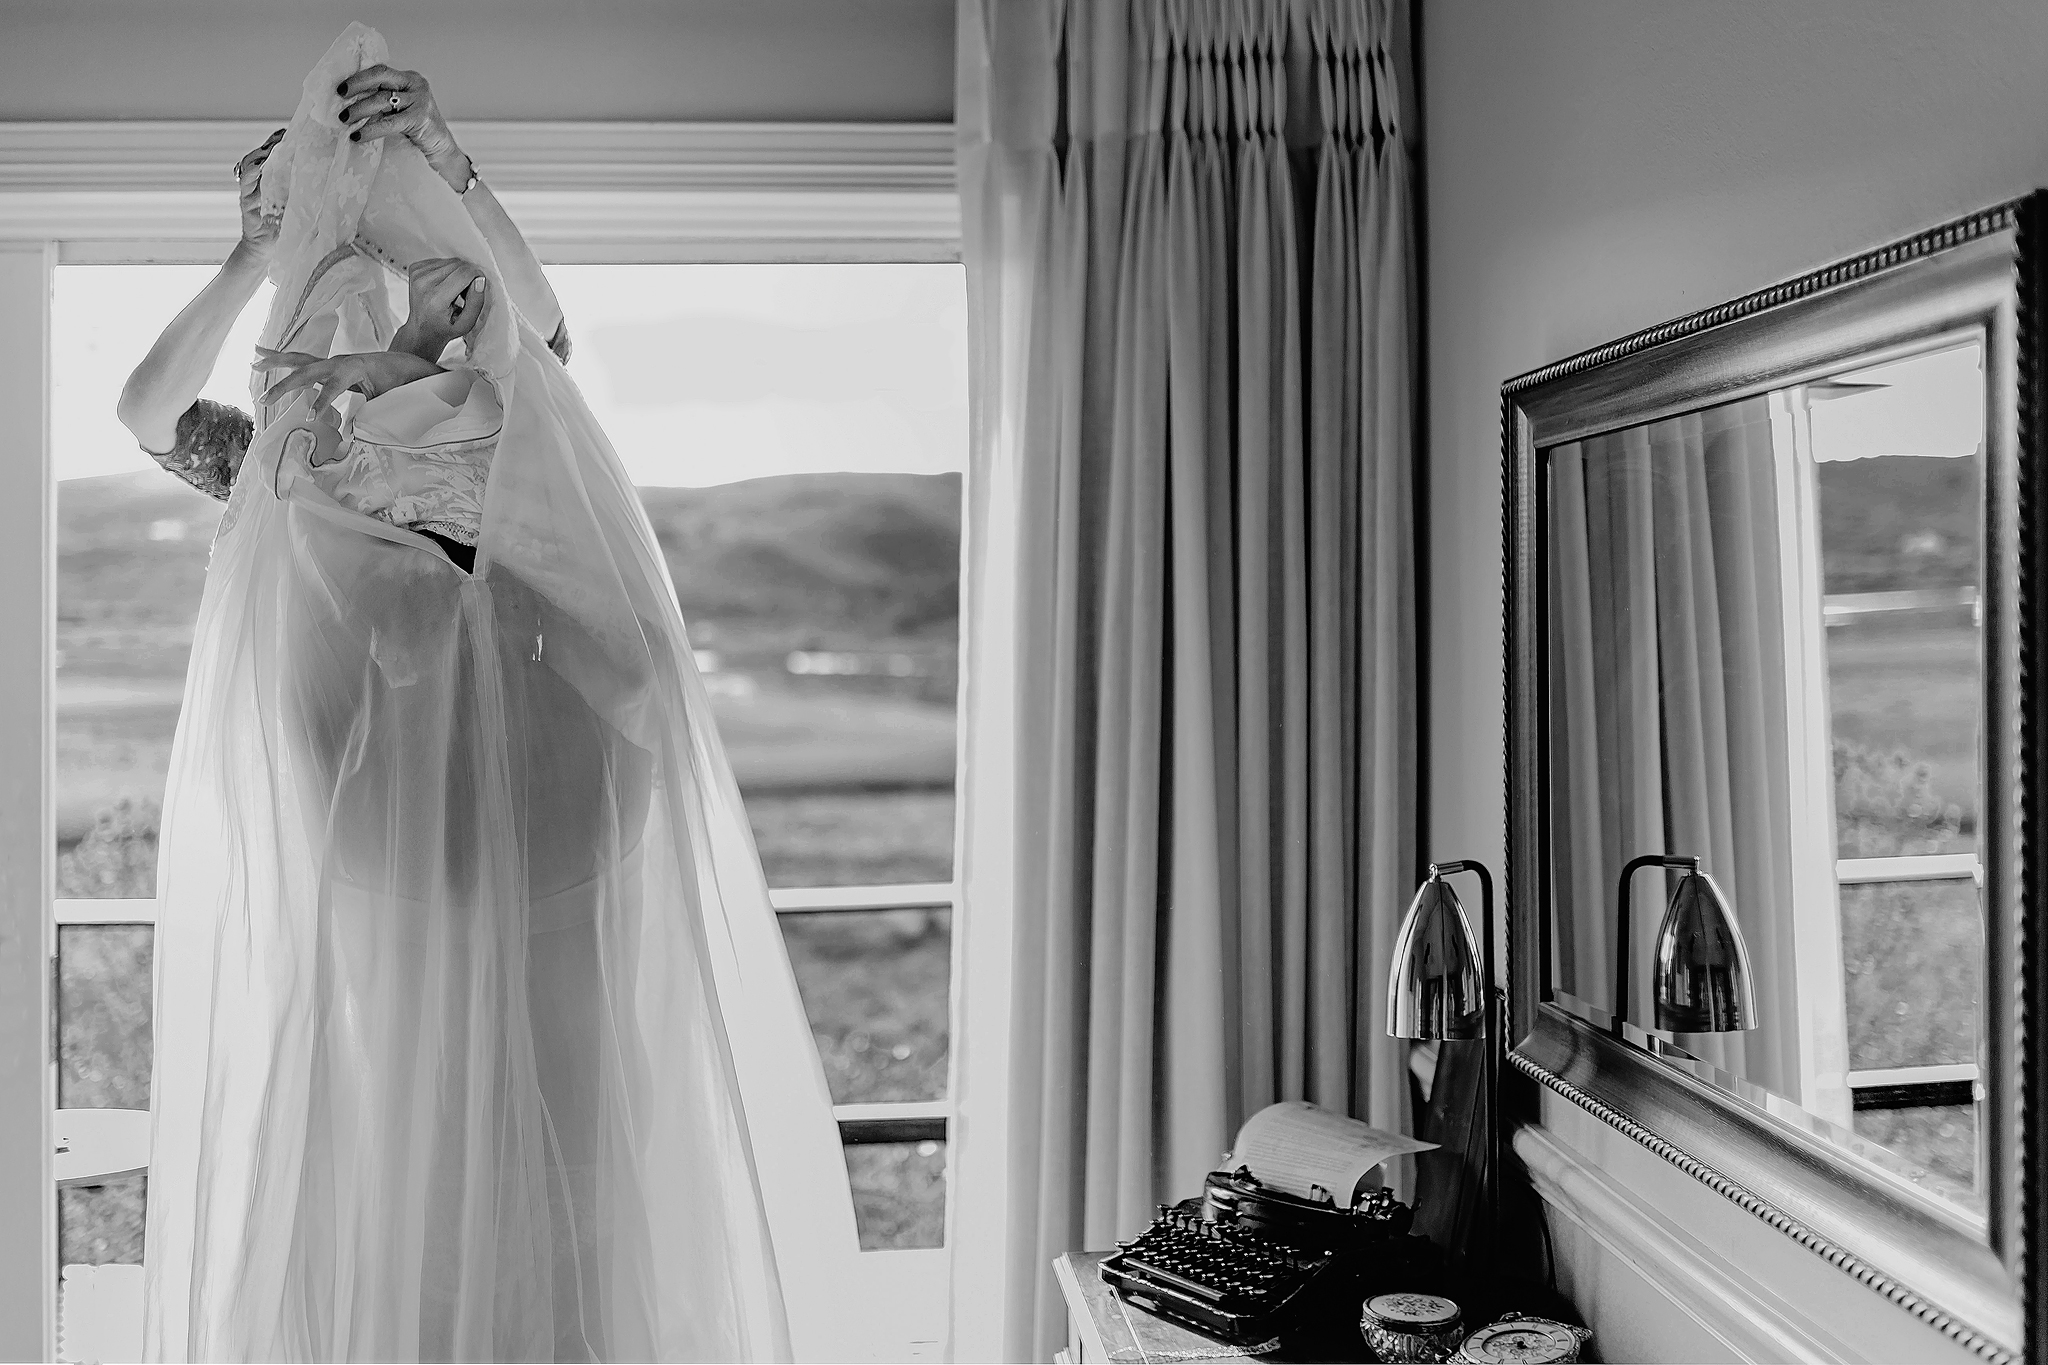 Helping bride into her gown - photo by Ruan Redelinghuys Photography